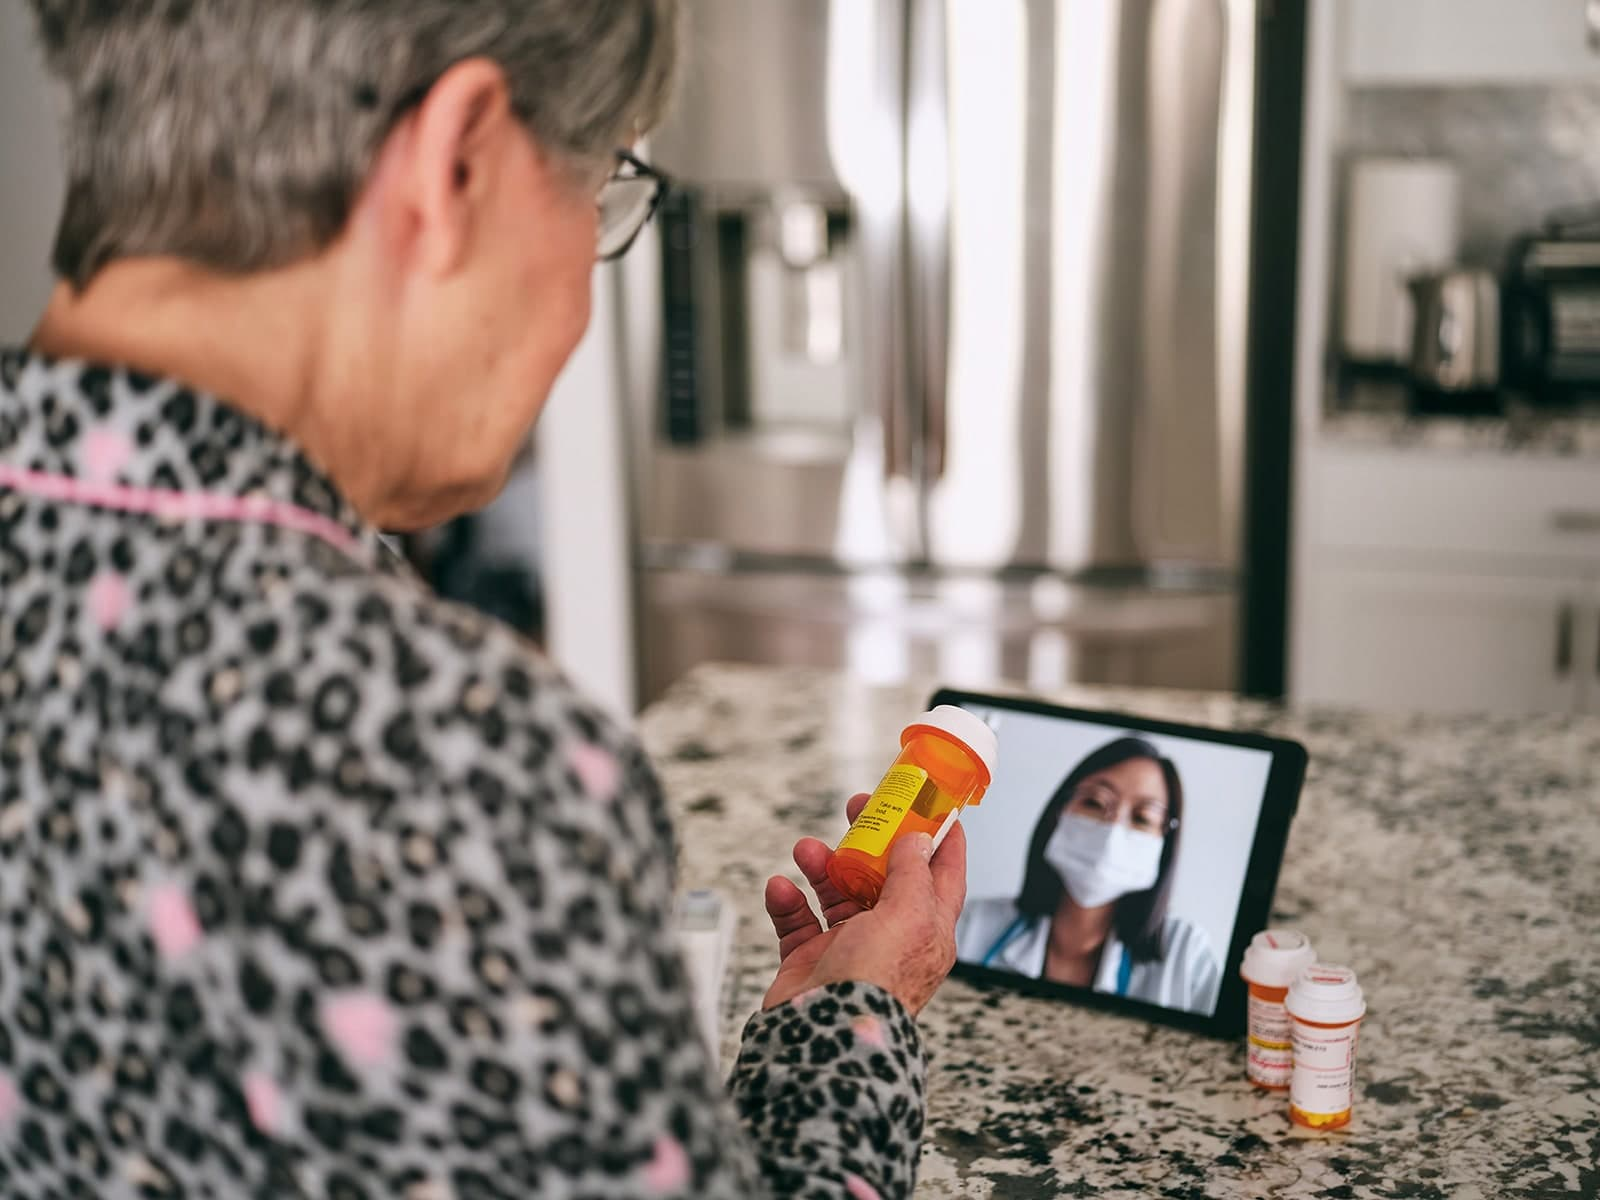 Patient chatting with her doctor via telehealth video